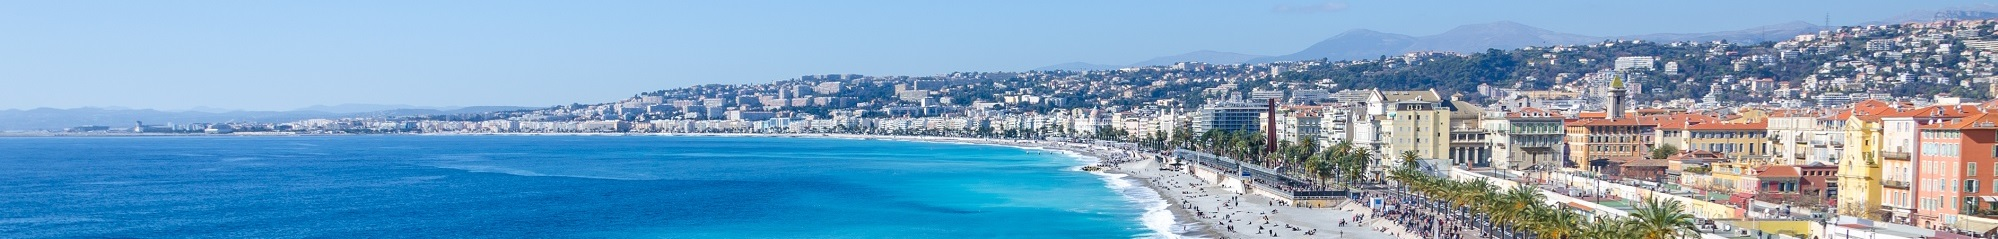 Baie des Anges, French Riviera